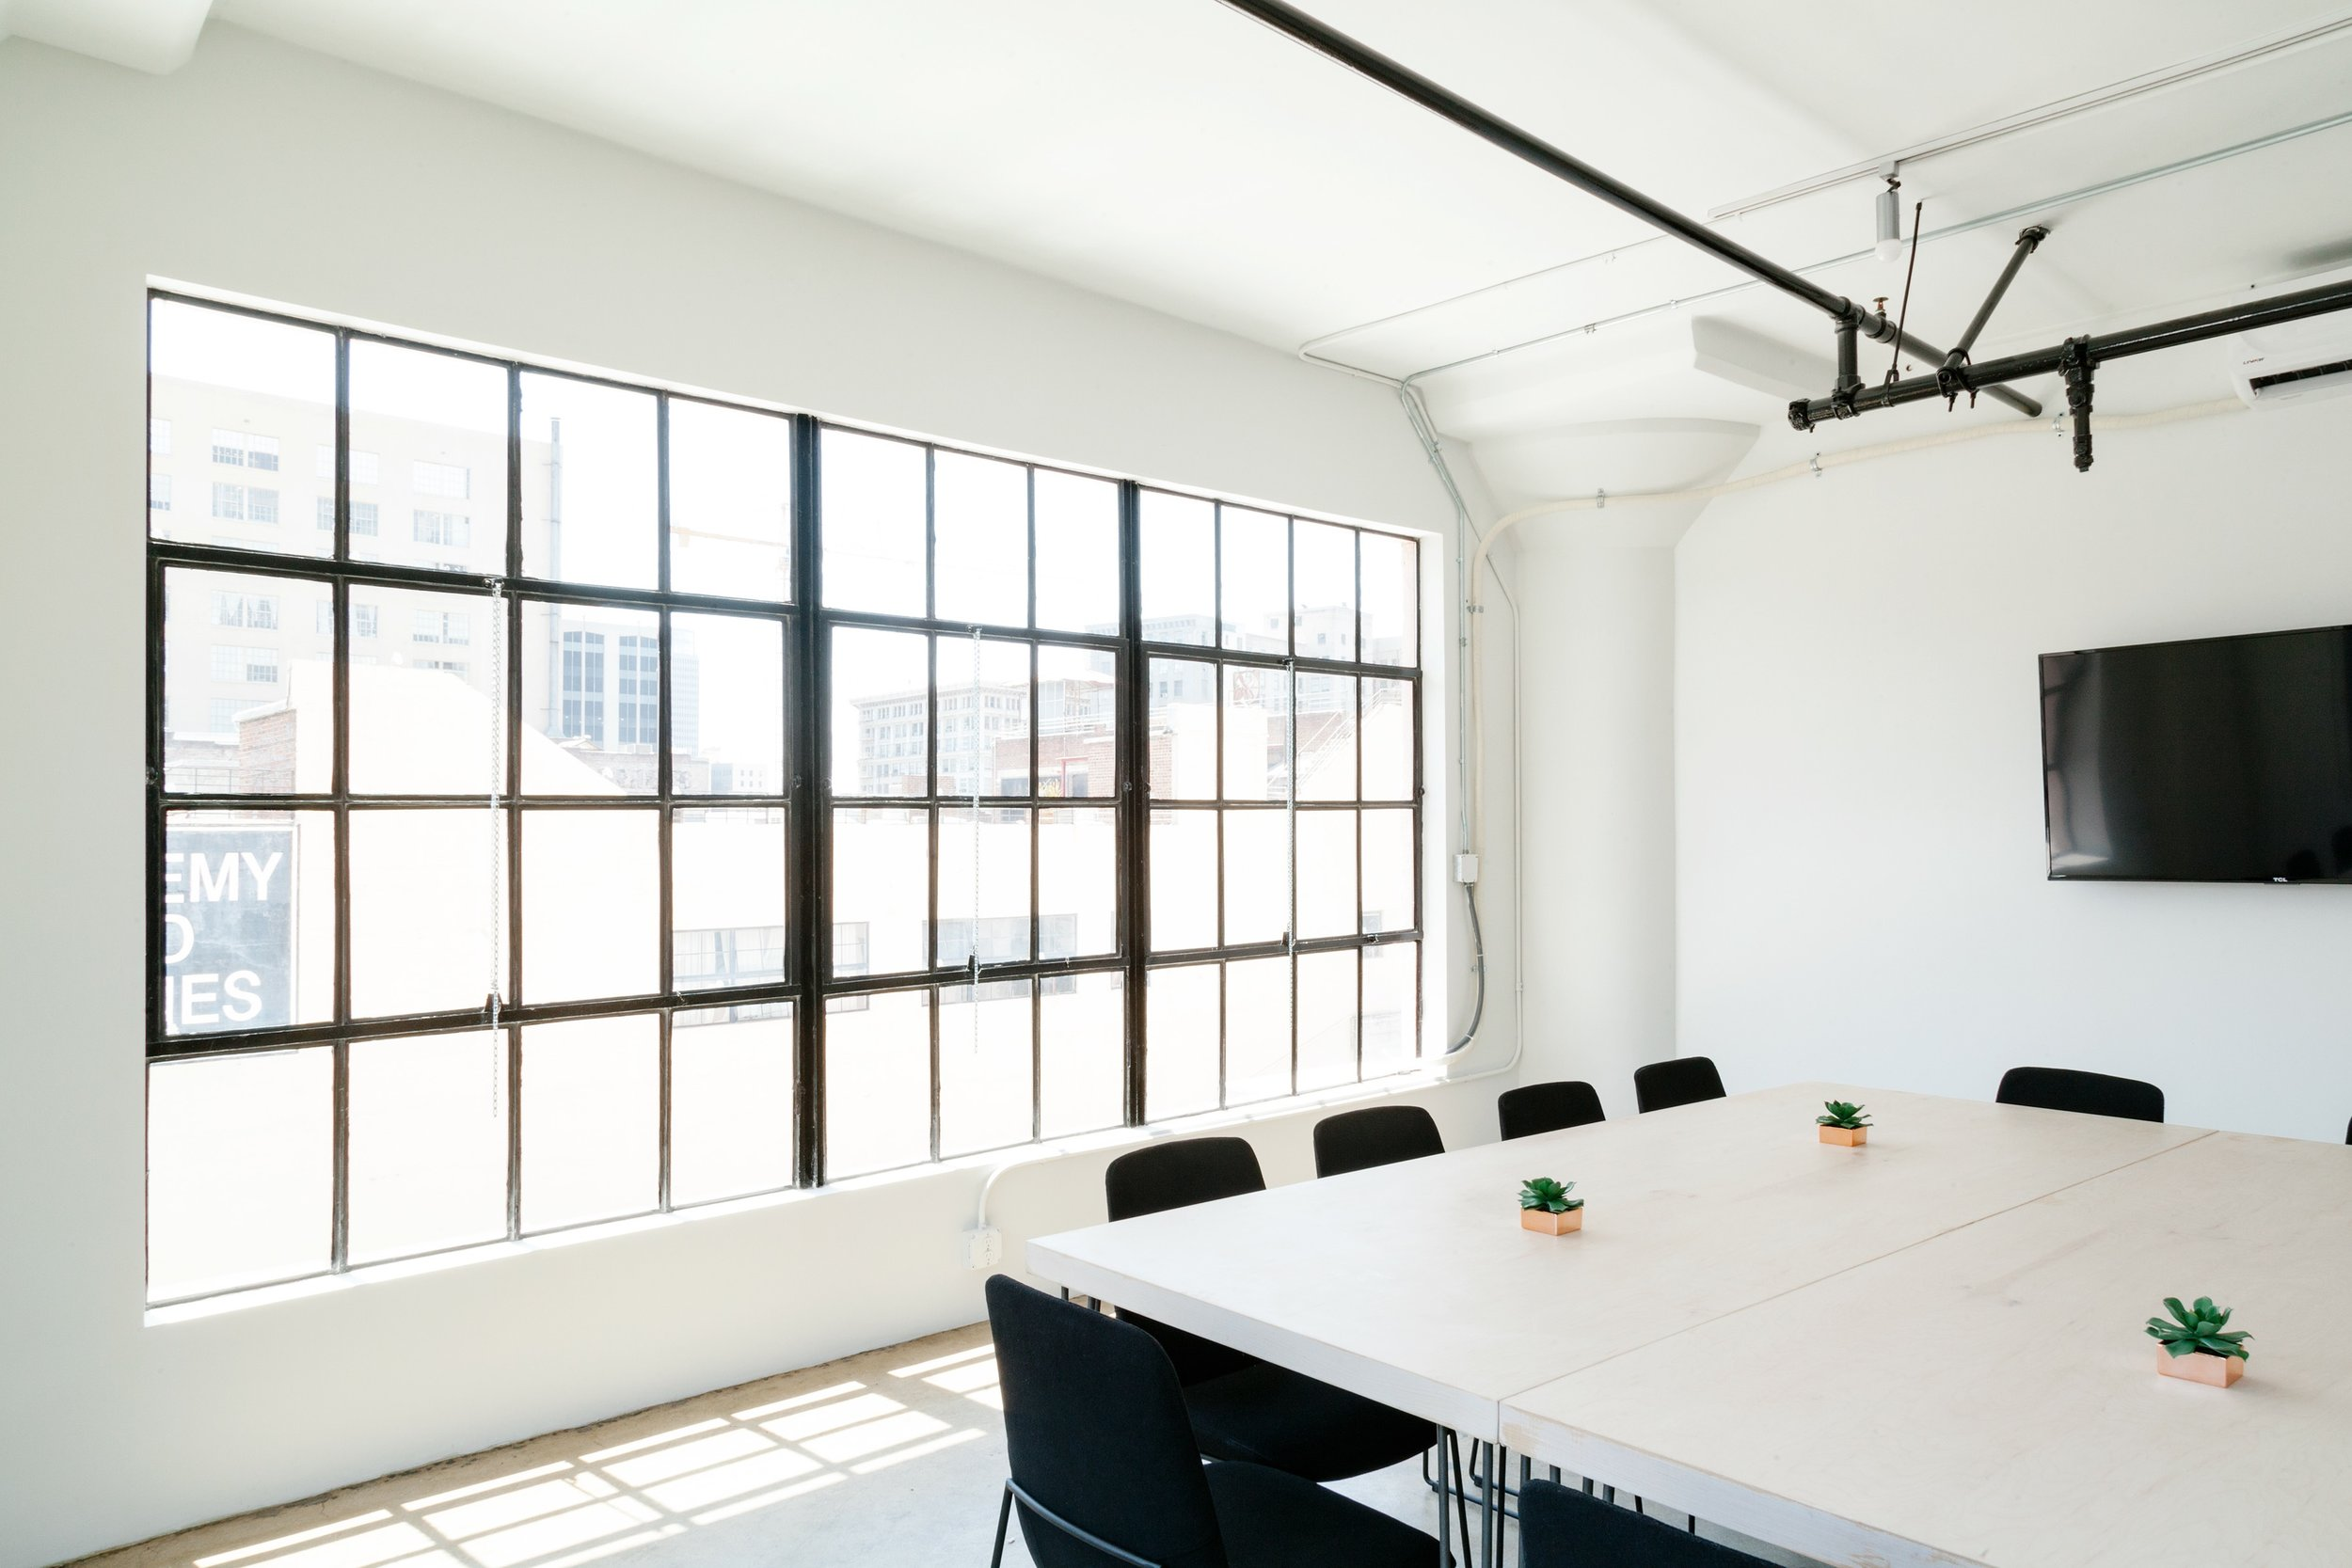 Natural light is one of the best ways to increase engagement in the workplace and meetings